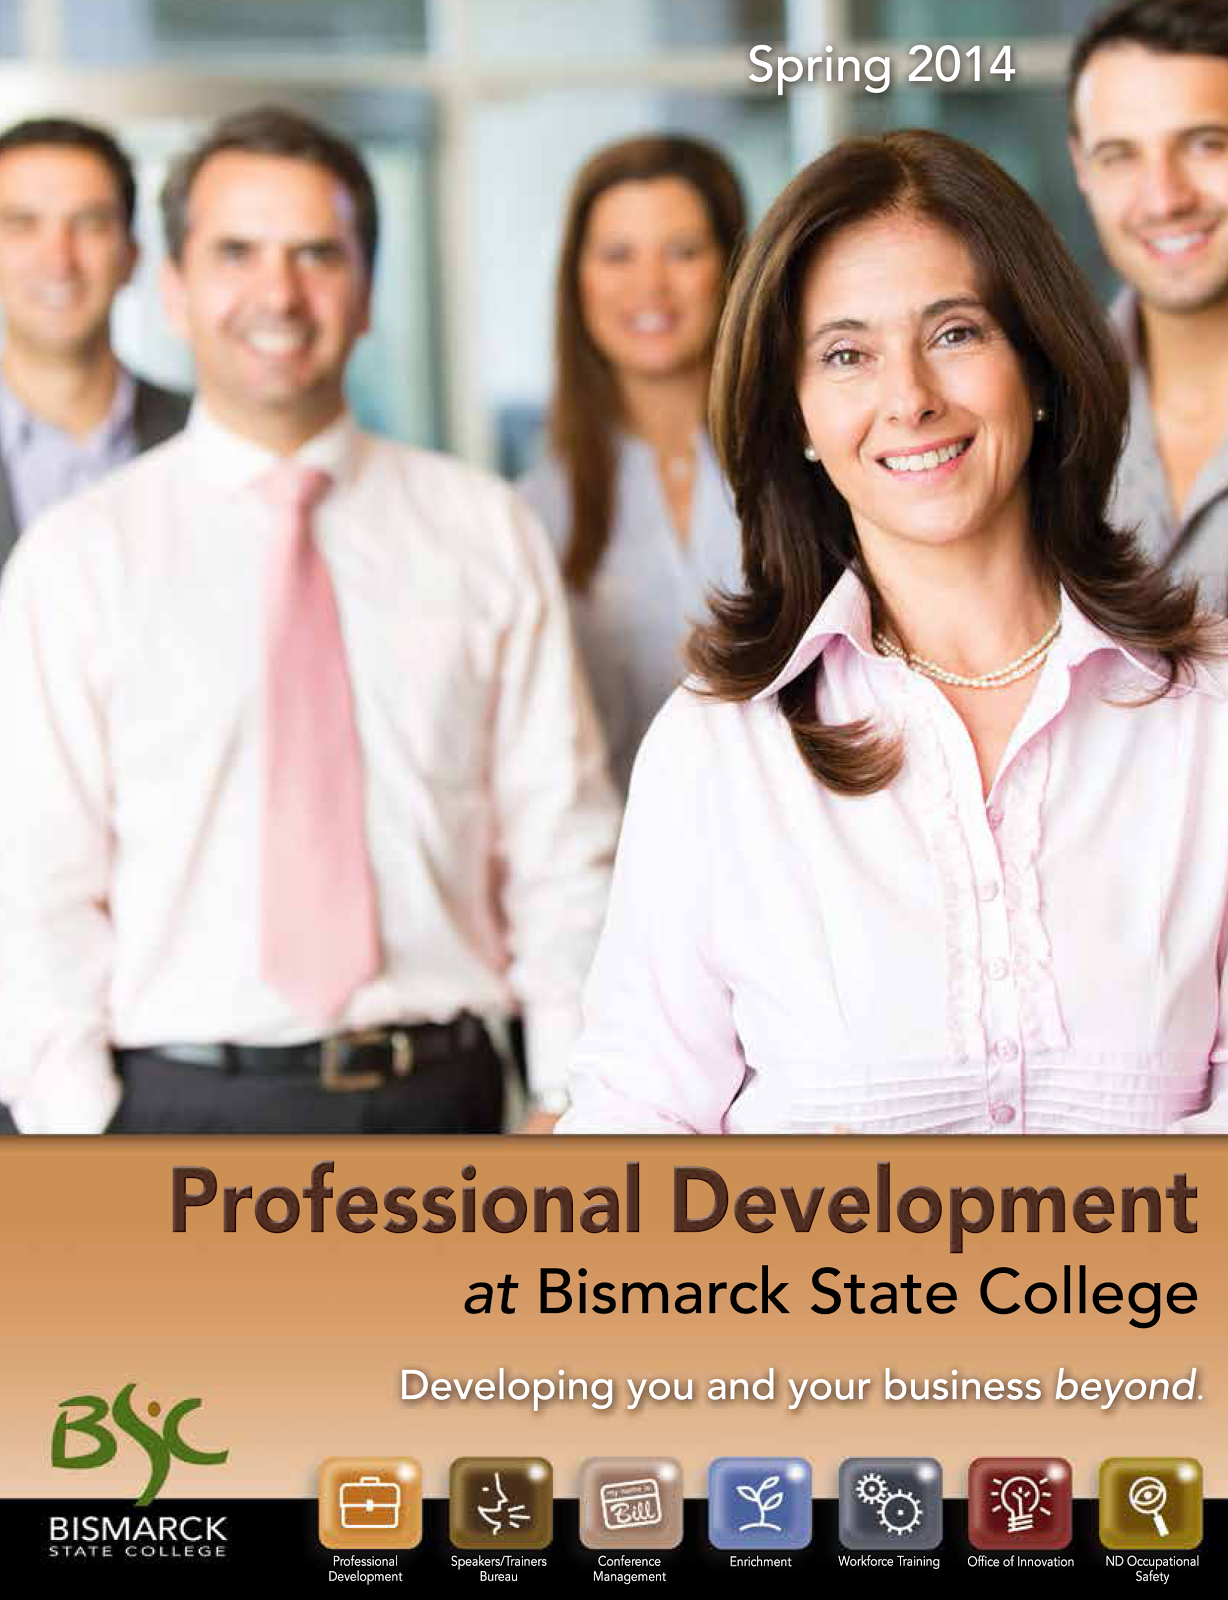 Spring Professional Development